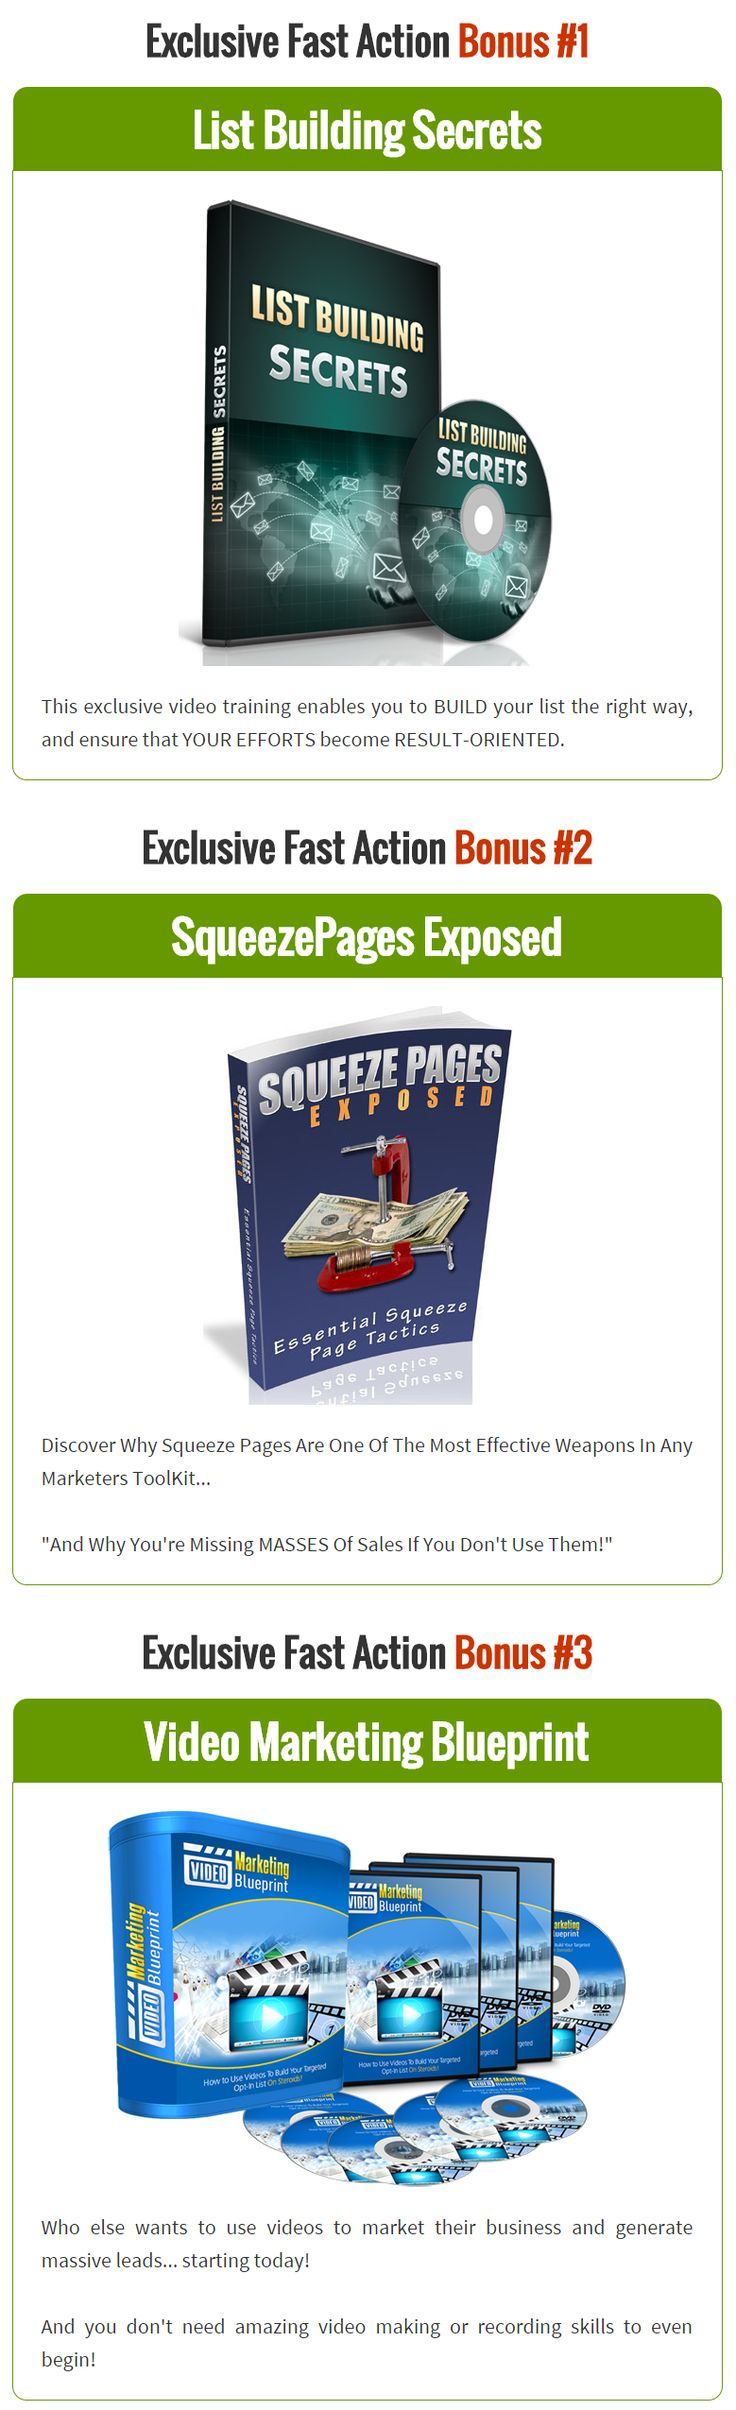 Vid Promo Pages Review +HUGE $4885 Bonus + Discount -SKYROCKET Sales With Proven Video Landing Pages